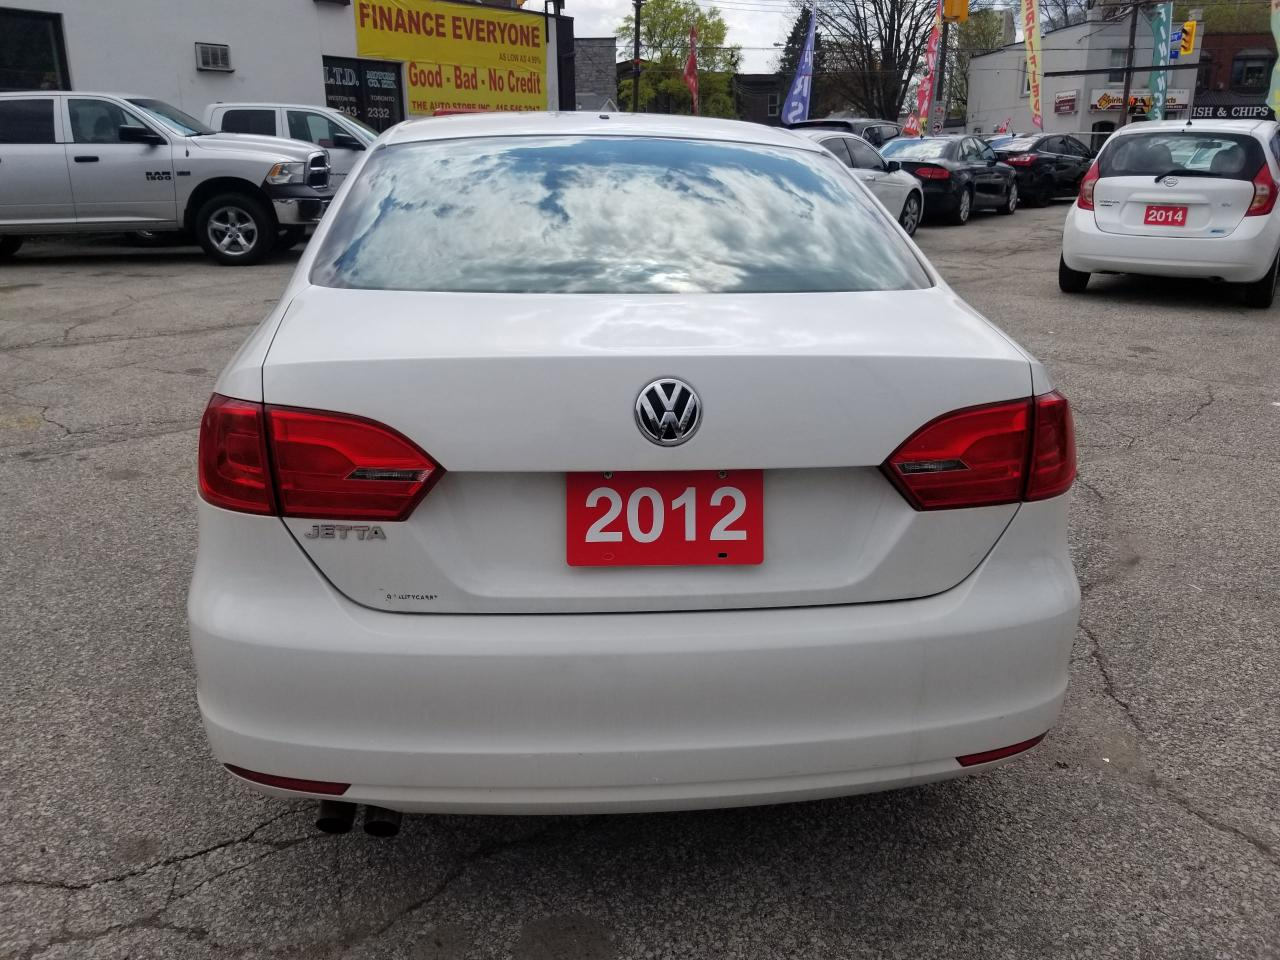 2012 Volkswagen Jetta in York | The Auto Store Inc